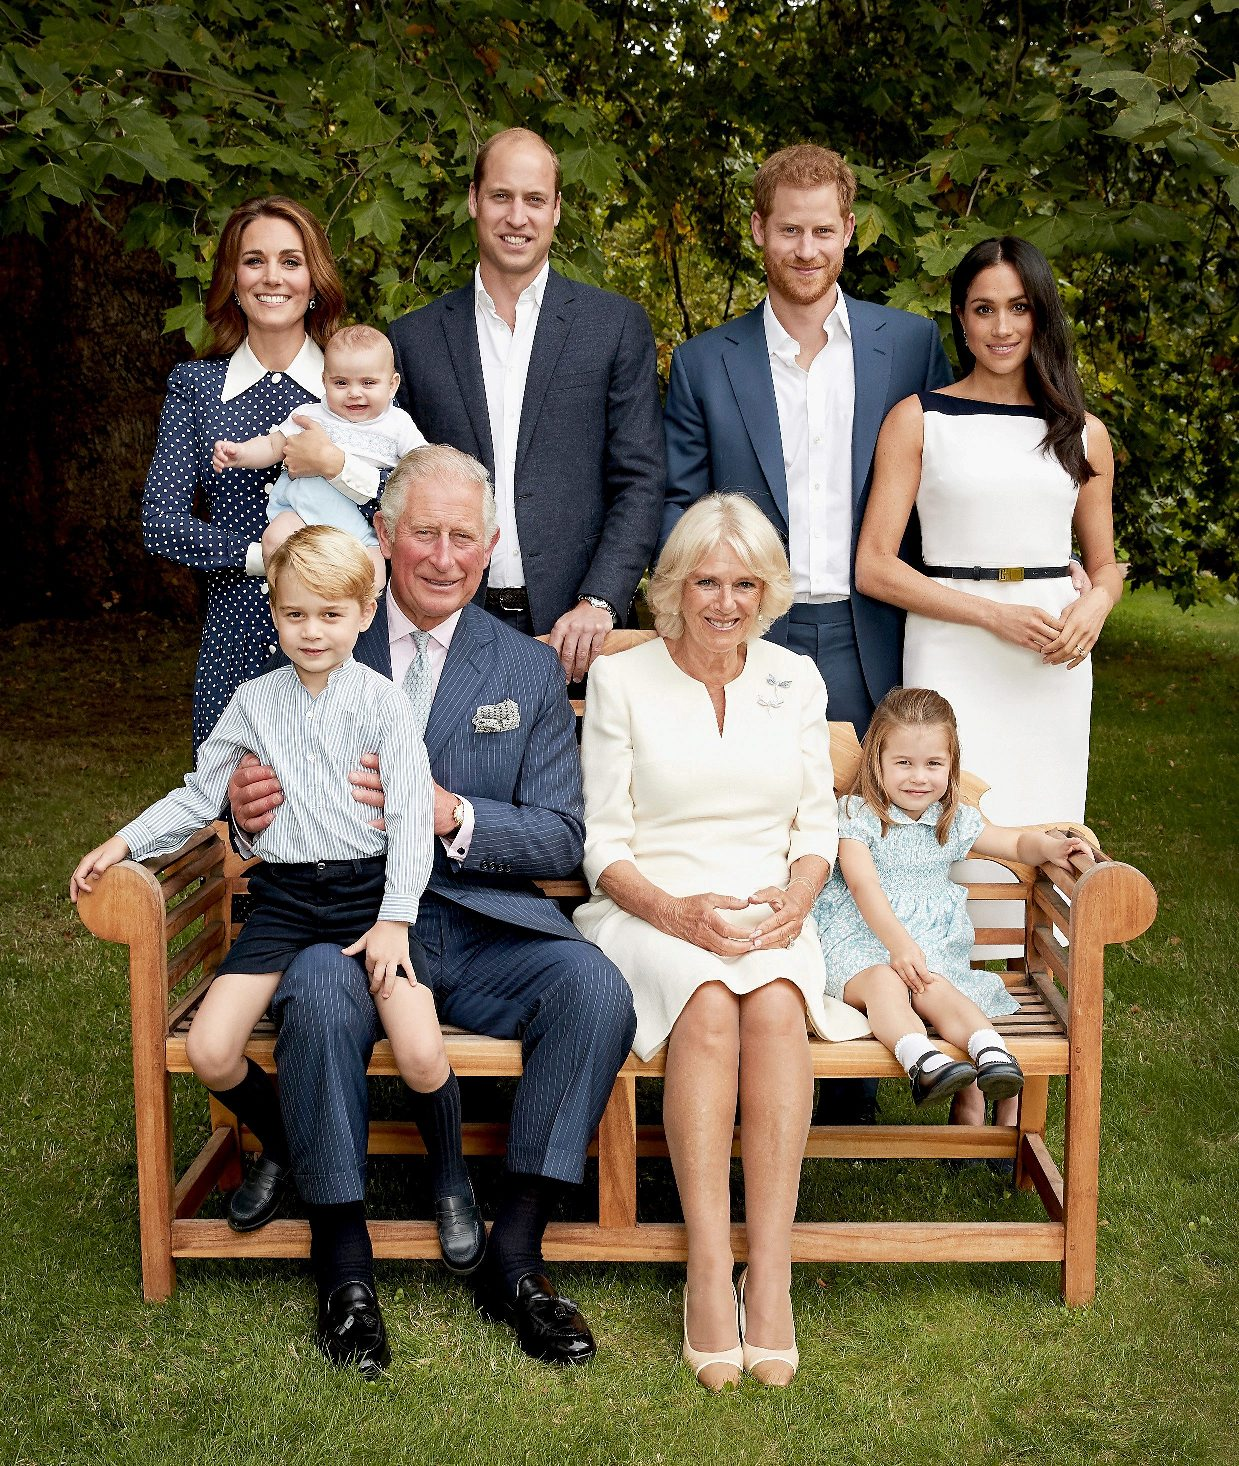 Britain's Prince Charles, Prince of Wales, poses for an official portrait to mark his 70th birthday in the gardens of Clarence House, with Camilla, Duchess of Cornwall, Prince Willliam, Duke of Cambridge, Catherine, Duchess of Cambridge, Prince George, Princess Charlotte, Prince Louis, Prince Harry, Duke of Sussex, and Meghan, Duchess of Sussex, in London, England, in this September 5, 2018 handout image provided by Clarence House. Chris Jackson/Getty Images/Clarence House/Handout via REUTERS    ATTENTION EDITORS - THIS PICTURE WAS PROVIDED BY A THIRD PARTY. NO RESALES. NO ARCHIVE. NO SALES. MANDATORY CREDIT. Strictly for editorial use only and available until December 12, 2018. The photograph must not be digitally enhanced, manipulated or modified when published. The photograph must not be used on the cover of any book or guides without prior consent from Clarence House.